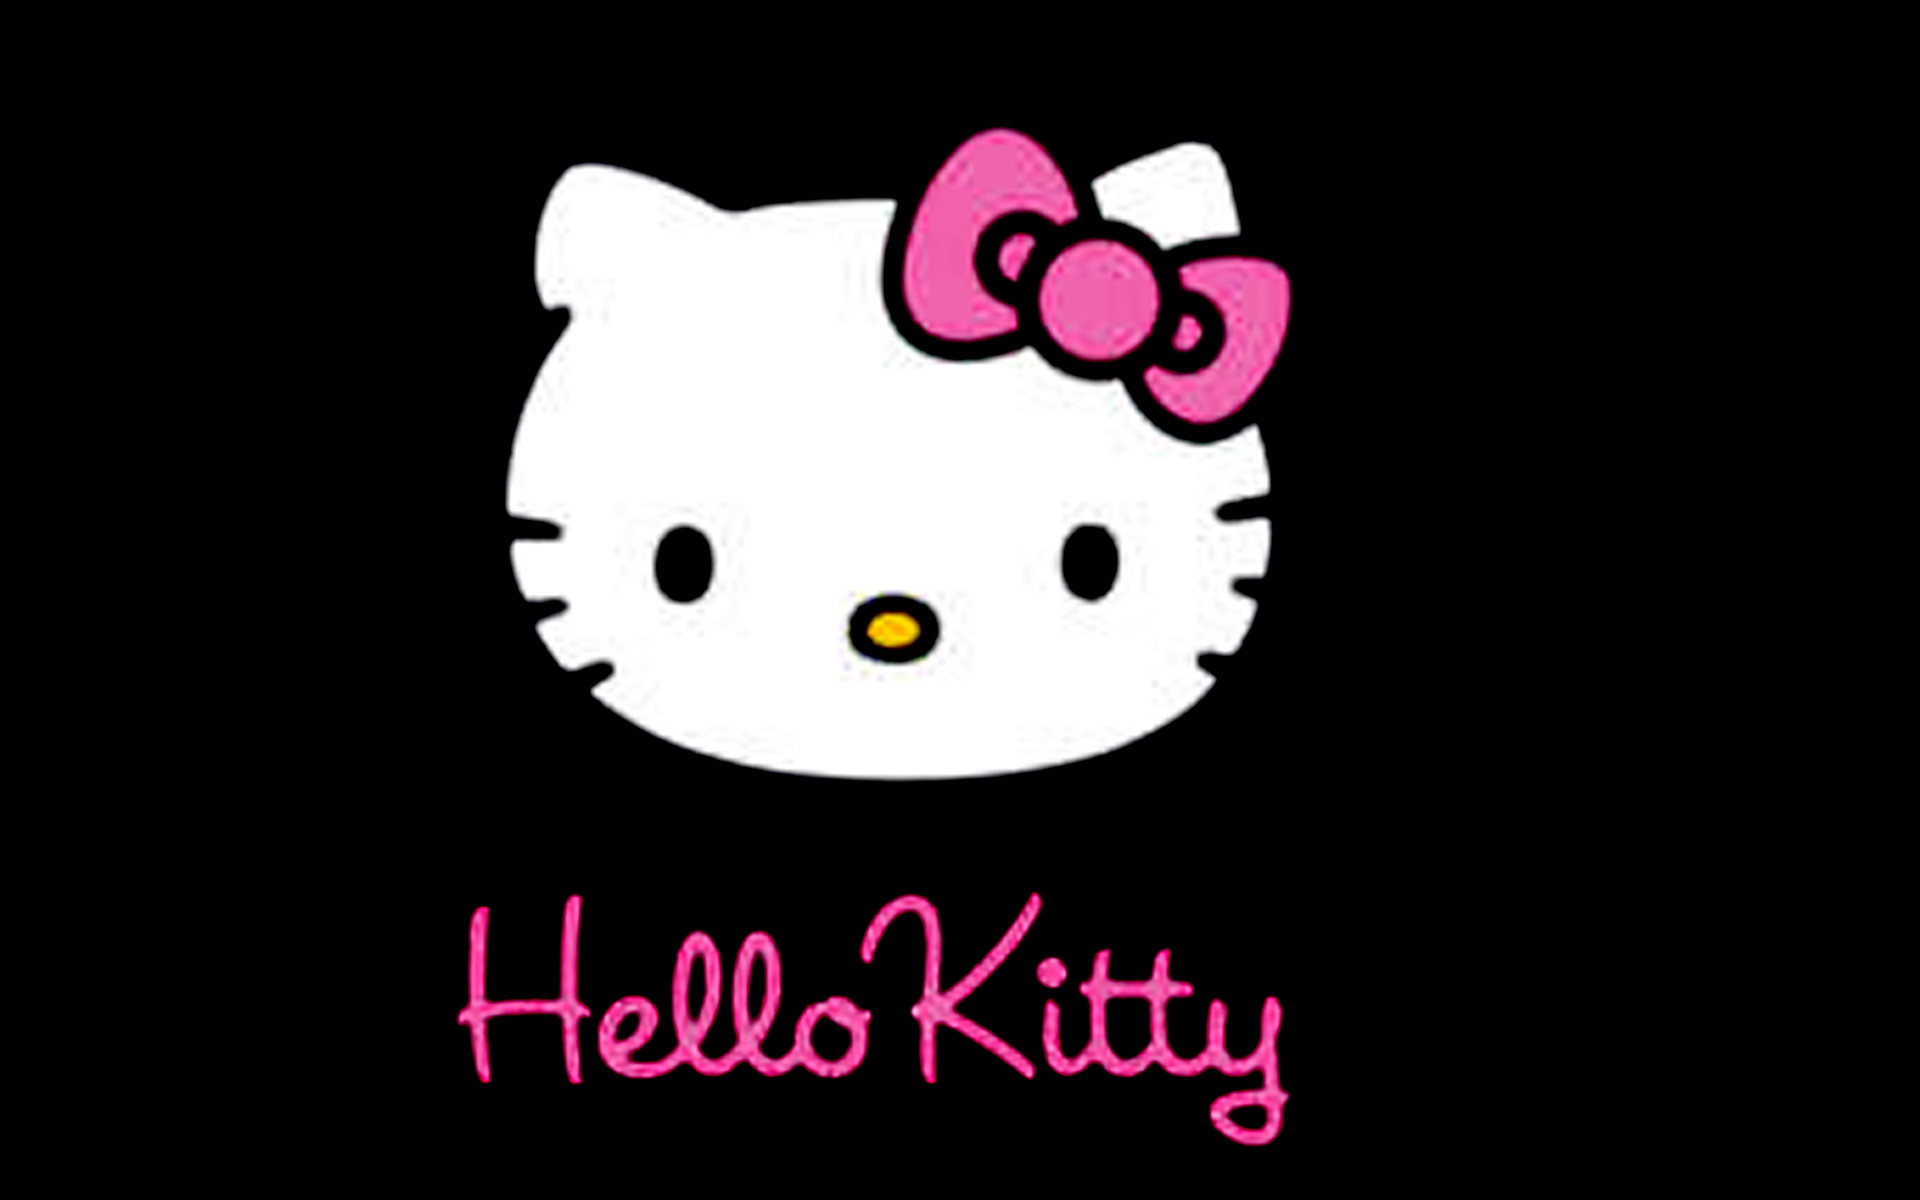 1920x1200 Hello Kitty Black Backgrounds Wallpapers